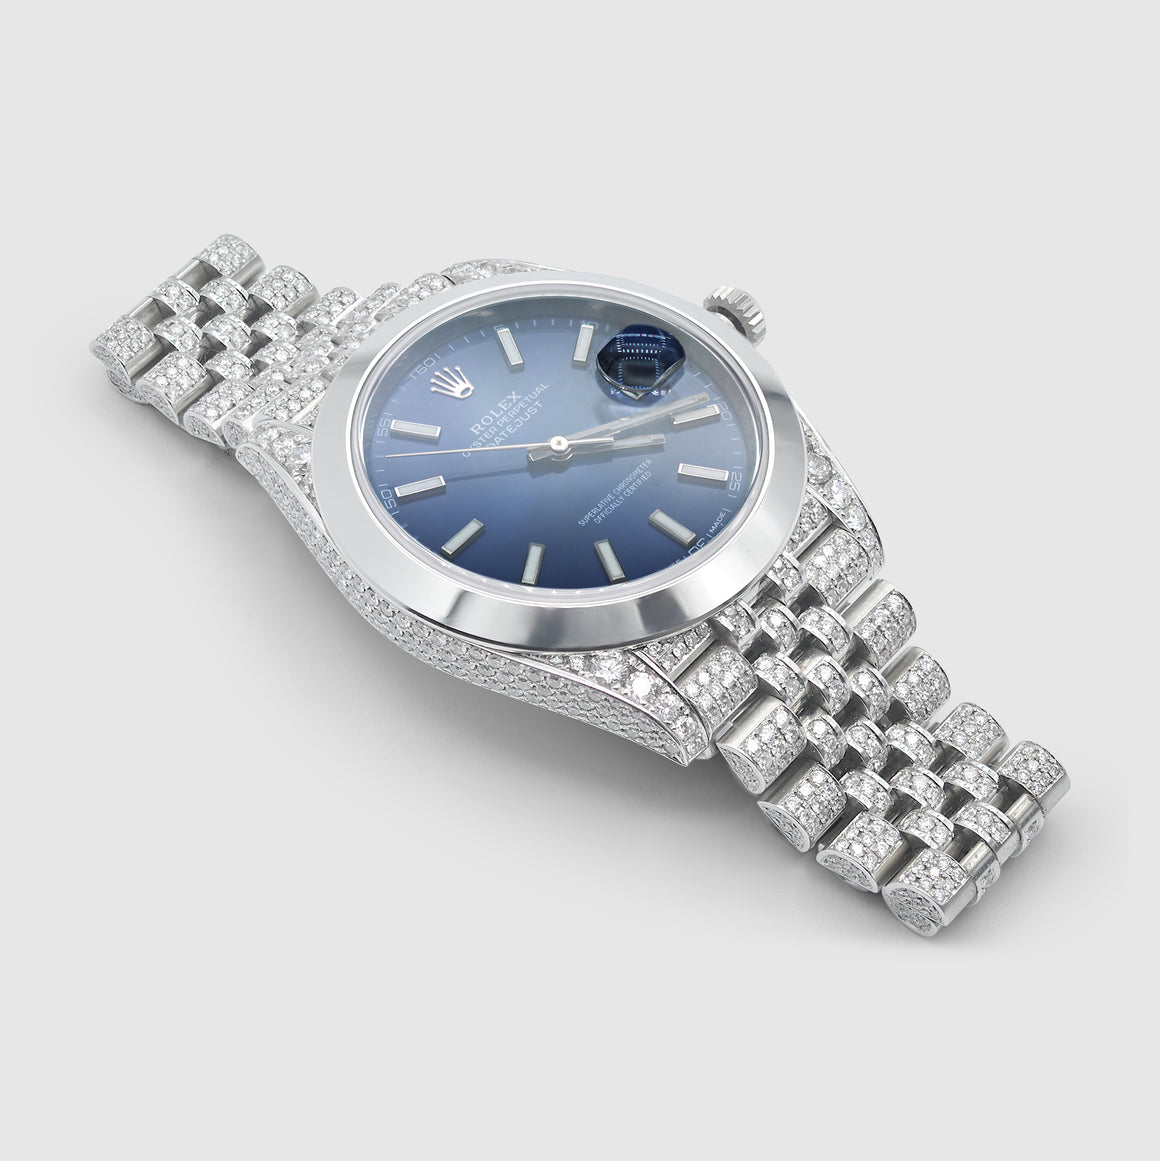 Iced Out DateJust 41mm Stainless Steel Blue Dial Watch